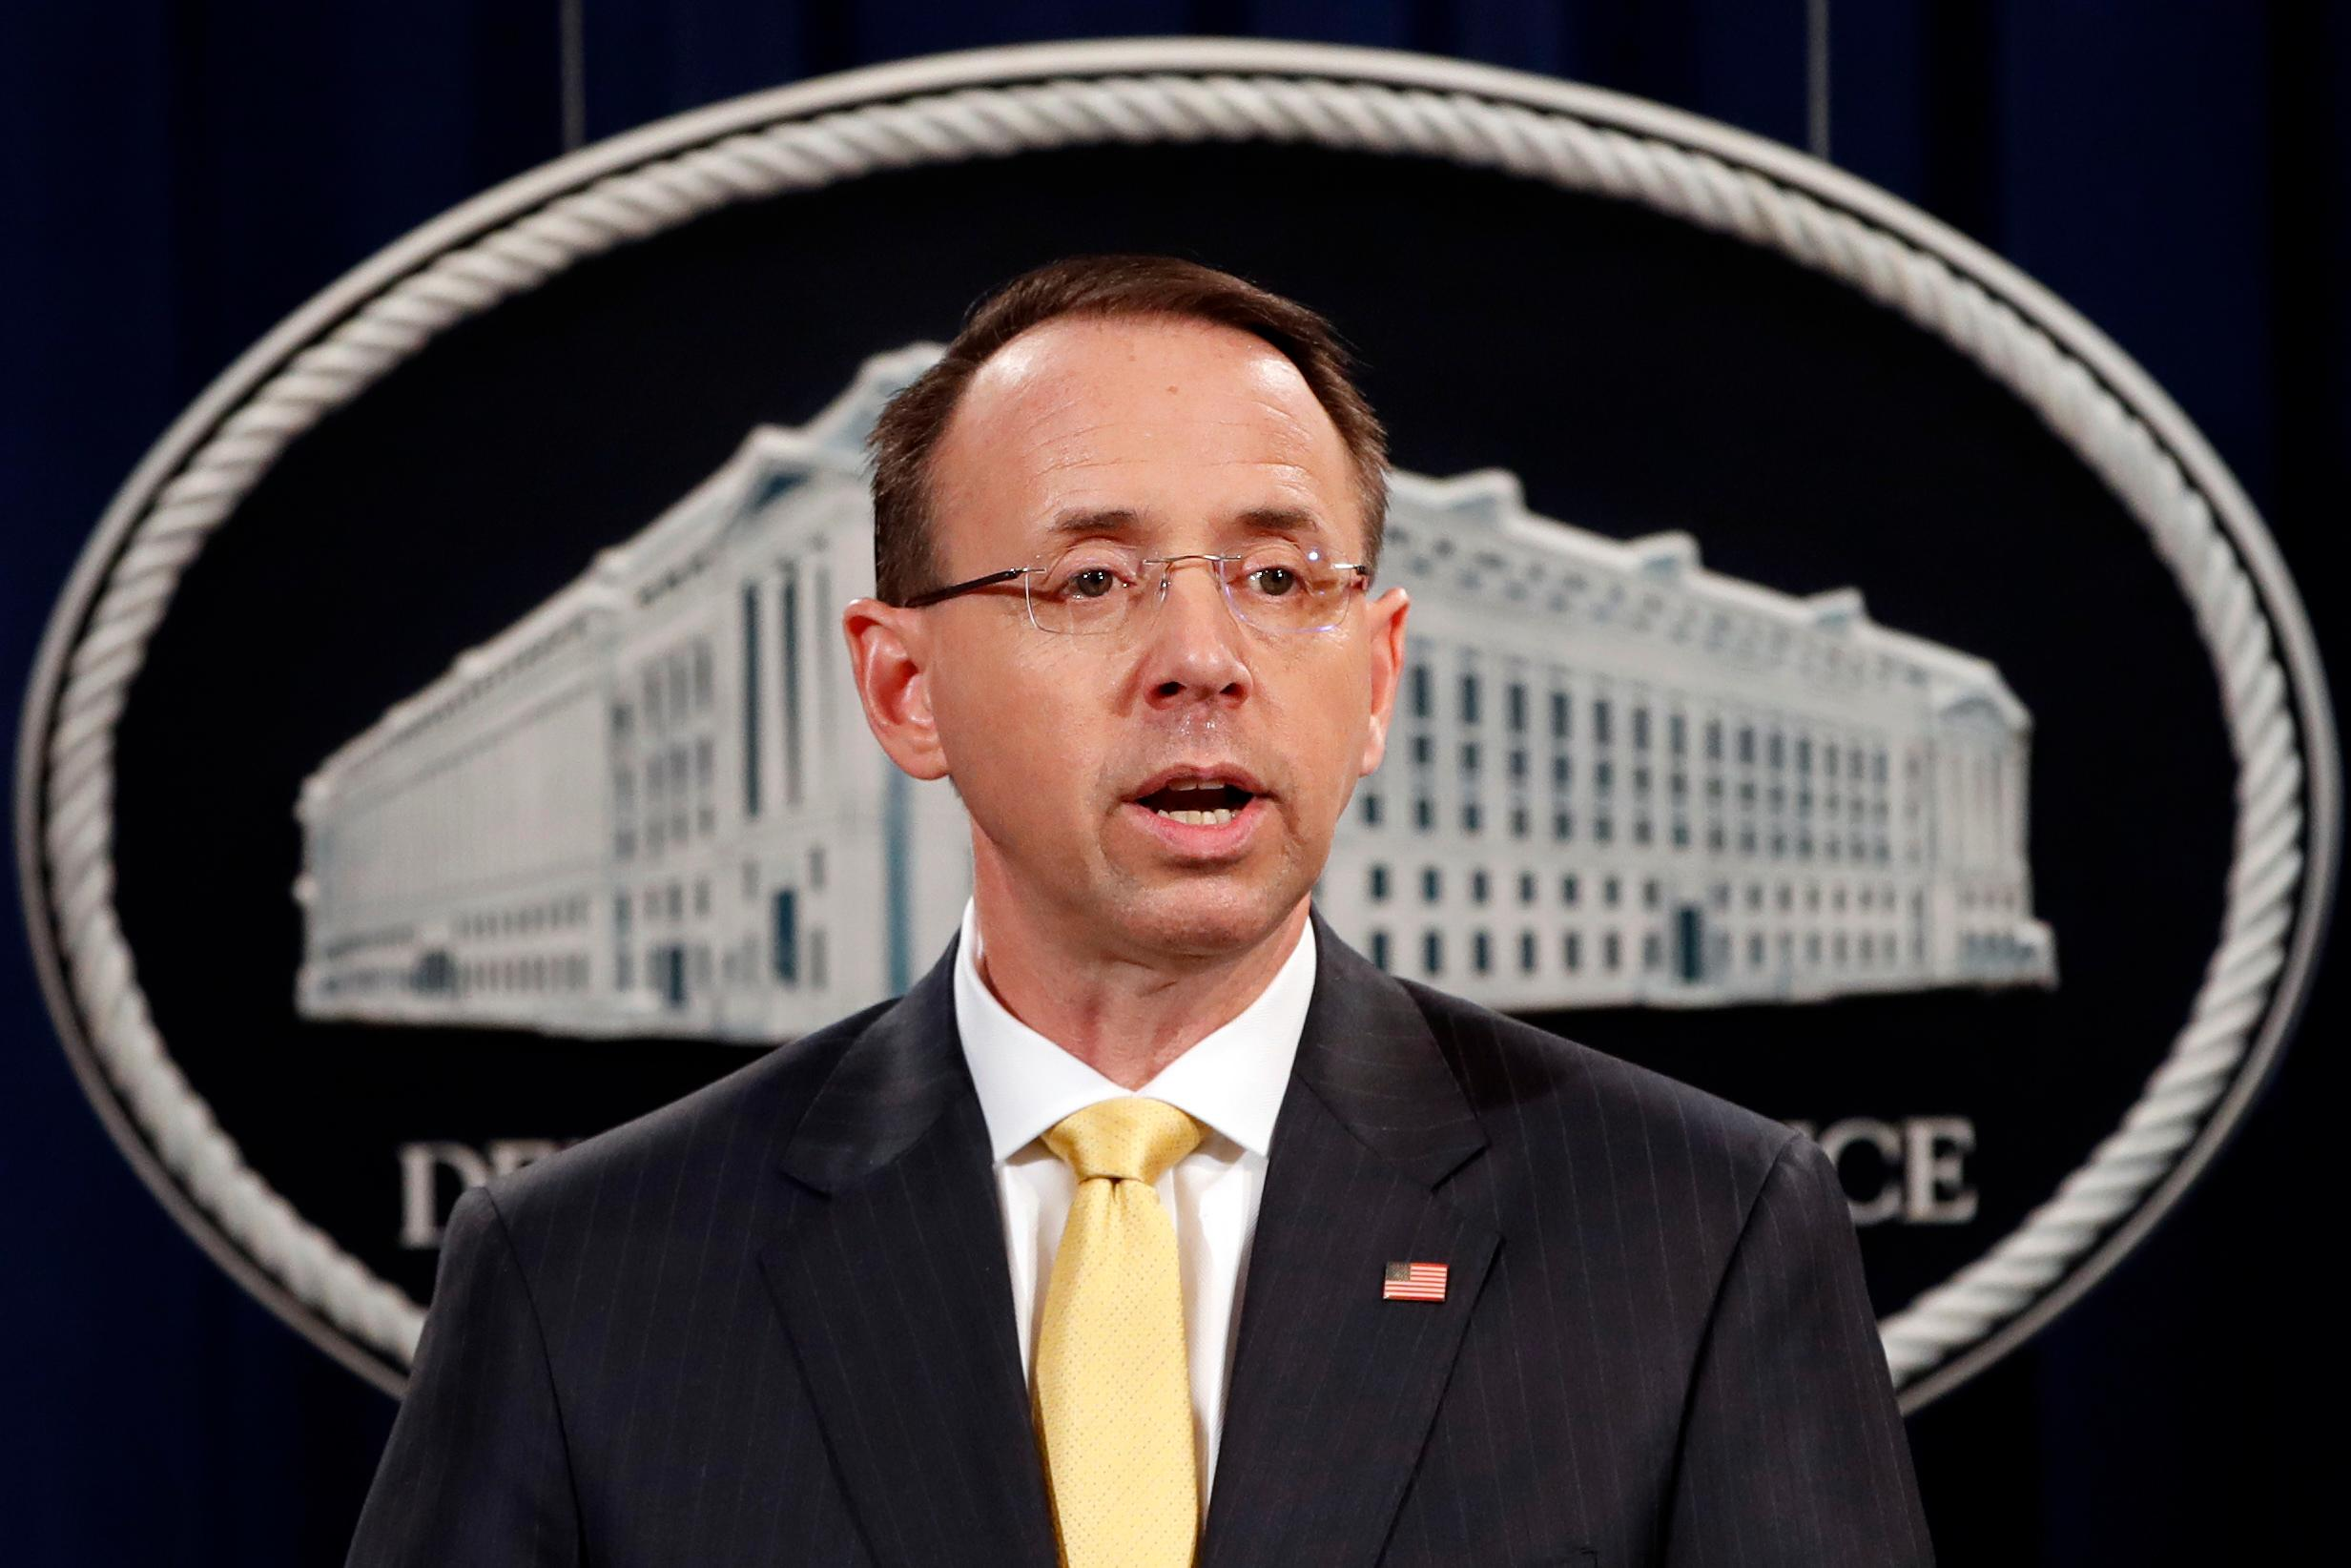 FILE - Deputy Attorney General Rod Rosenstein, speaks to the media with an announcement that the office of special counsel Robert Mueller says a grand jury has charged 13 Russian nationals and several Russian entities, Friday, Feb. 16, 2018, in Washington. The defendants are accused of violating U.S. criminal laws to interfere with American elections and the political process. (AP Photo/Jacquelyn Martin)